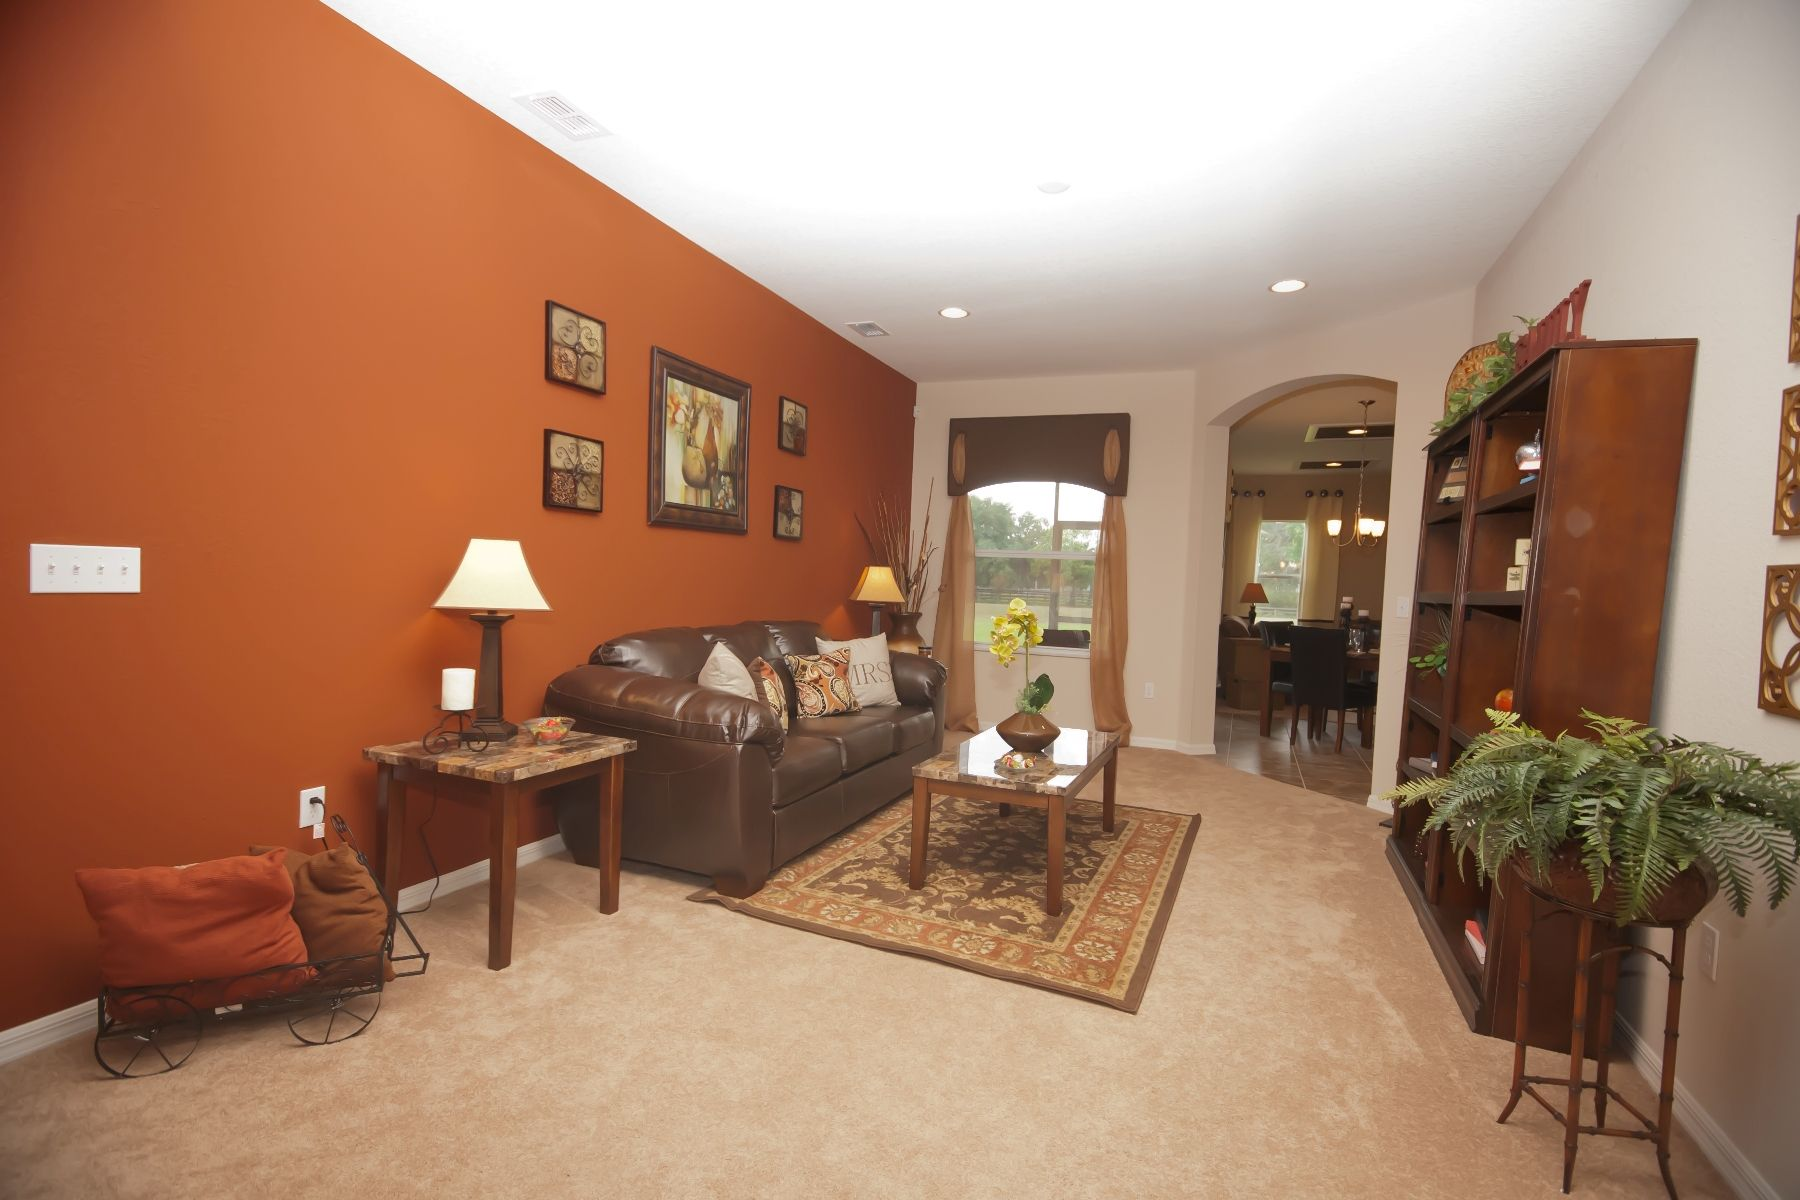 Williamson Ii Floor Plan Highland Homes Living Room Orange Burnt Orange Living Room Orange Living Room Walls